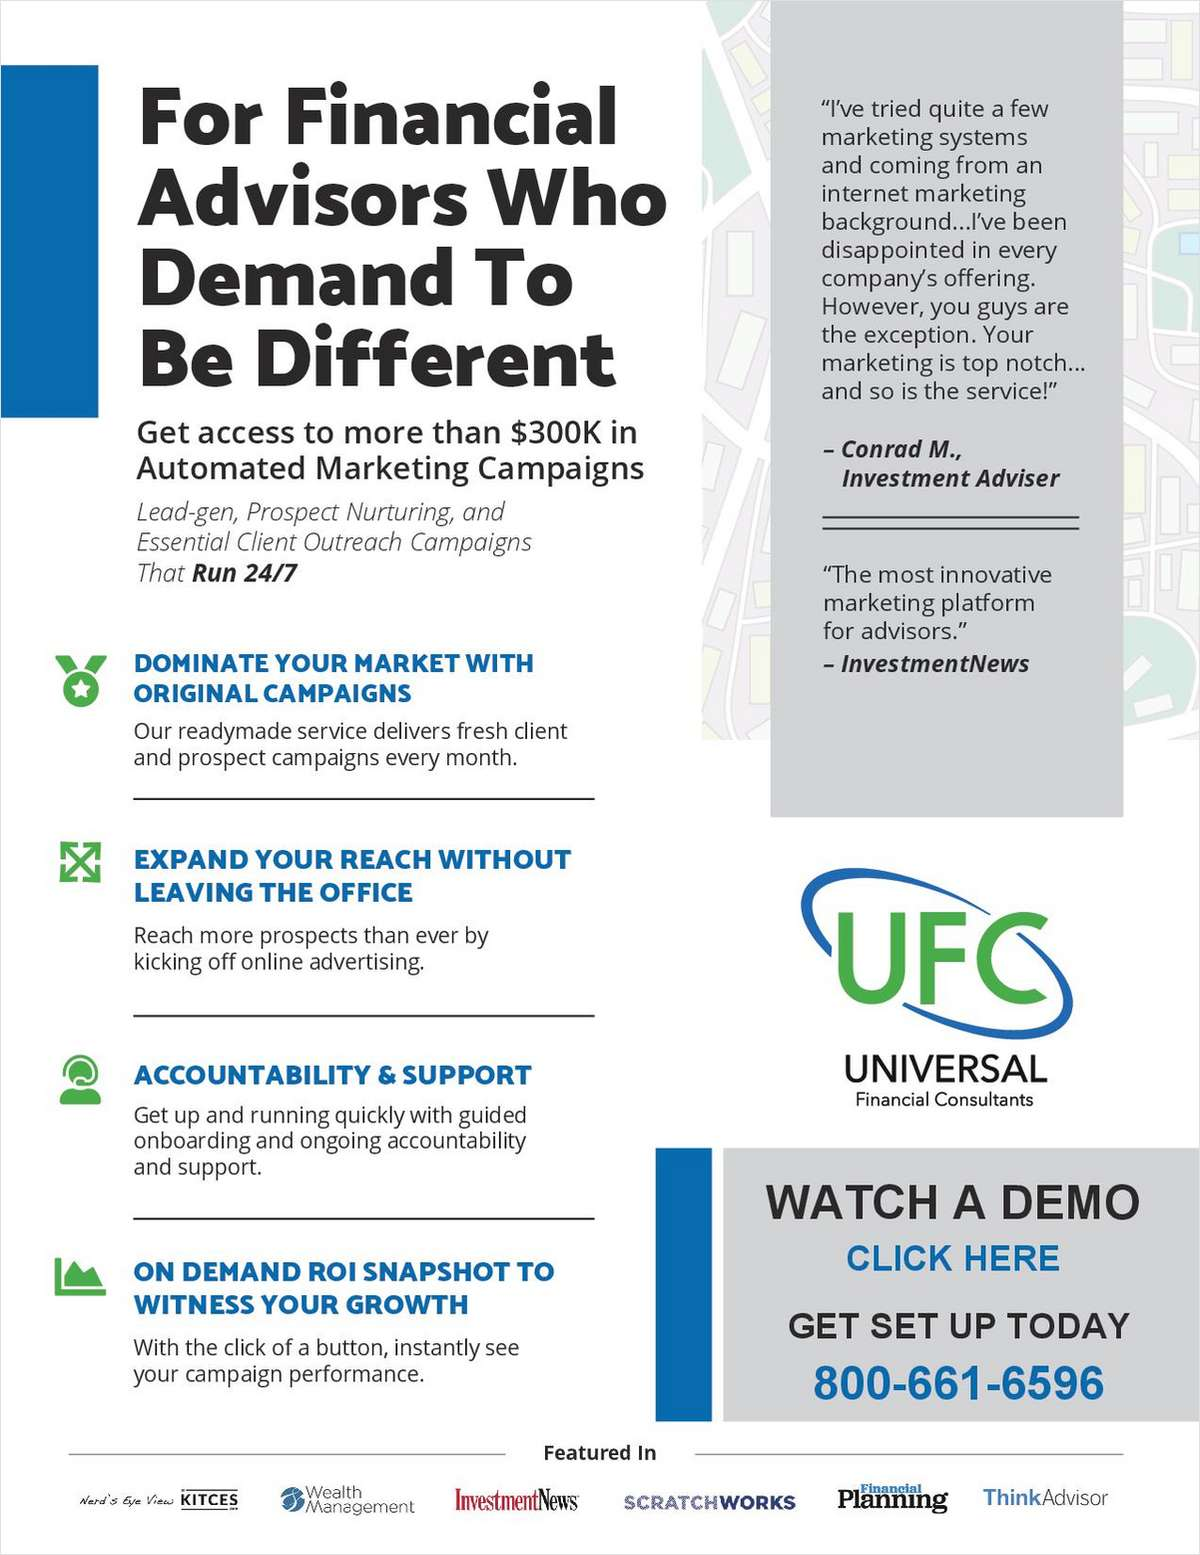 How Financial Advisors Can Differentiate Their Marketing